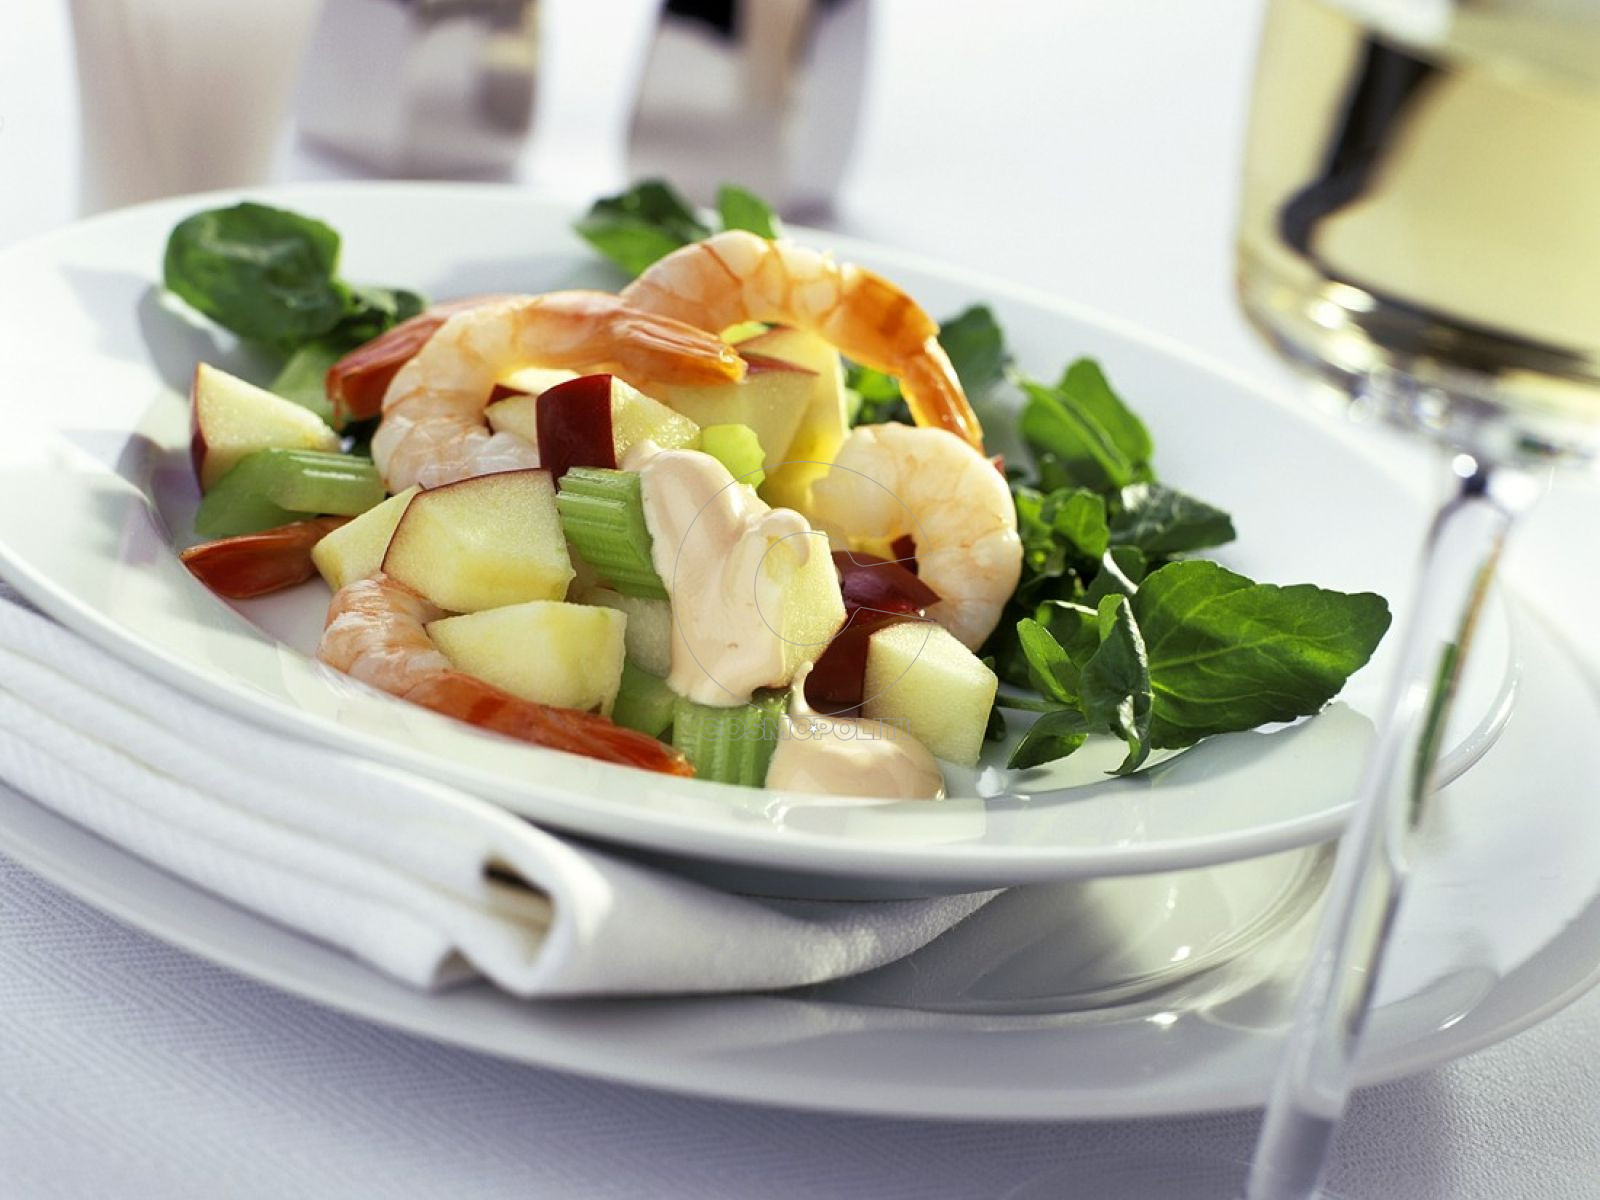 watercress-apple-salad-with-shrimp-593330